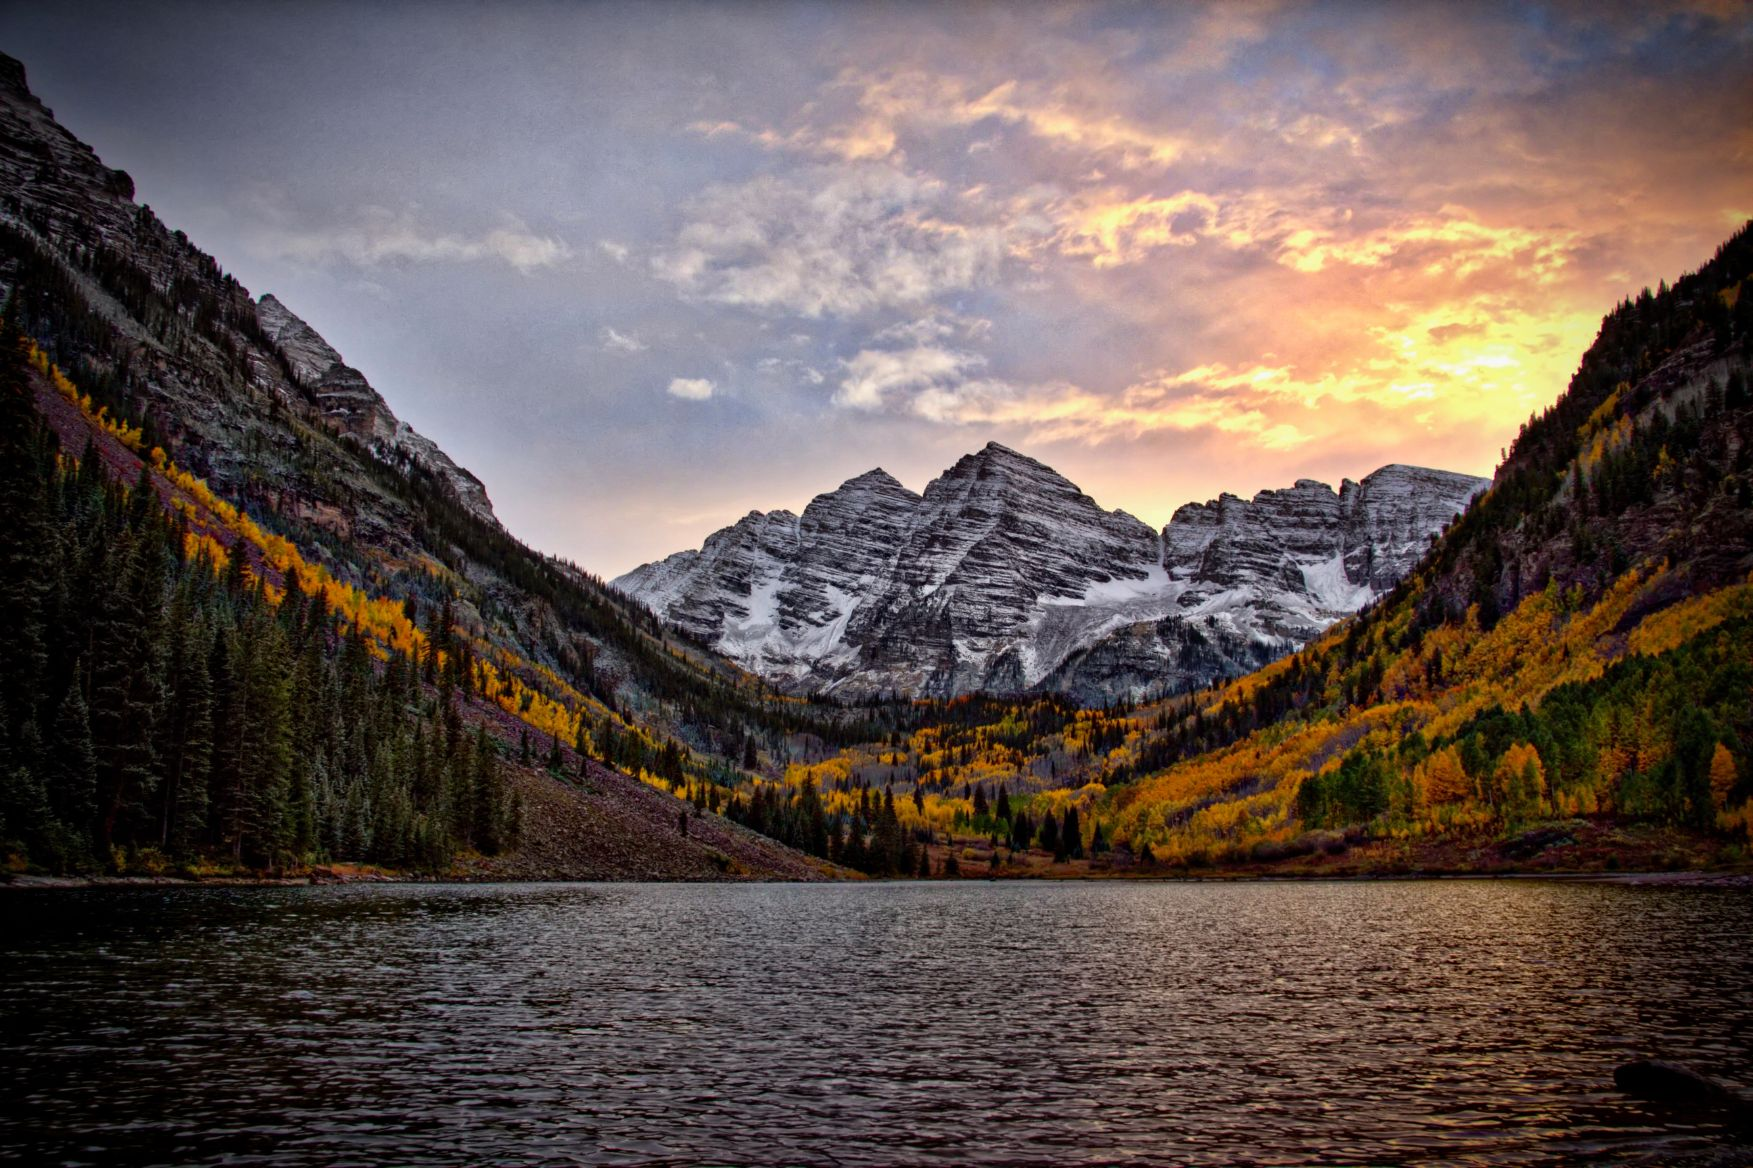 Maroon Bells Mountain and Lake at sunset